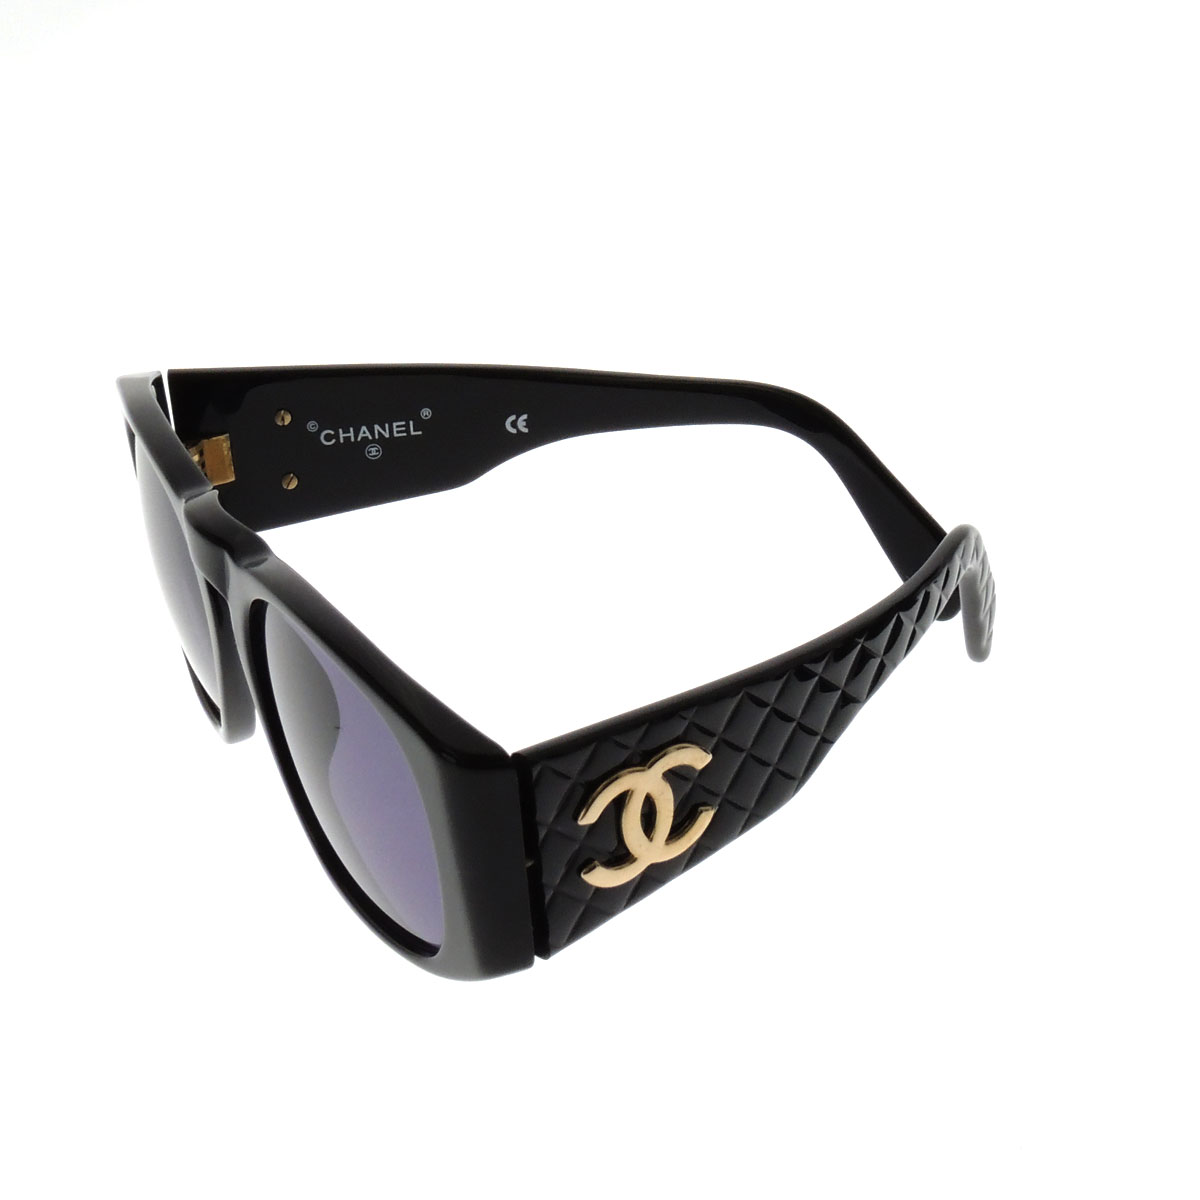 Sunglasses Lady's with the CHANEL here mark